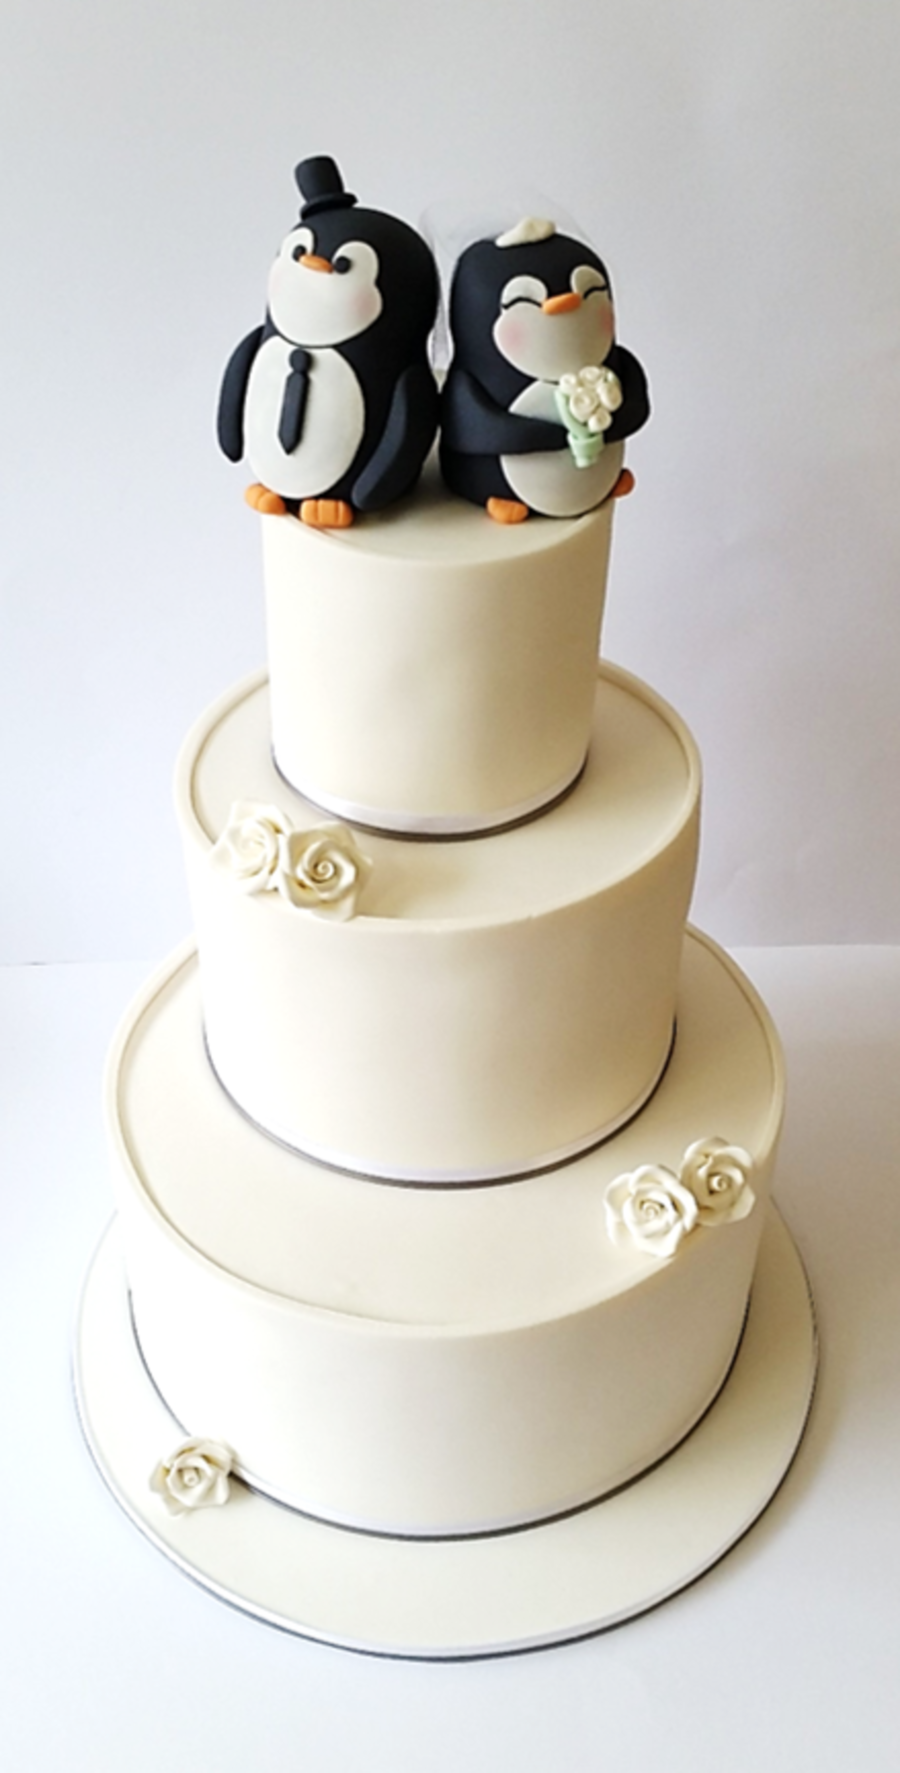 Wedding Cake With Hand Made Penguin Bride And Groom Toppers ...